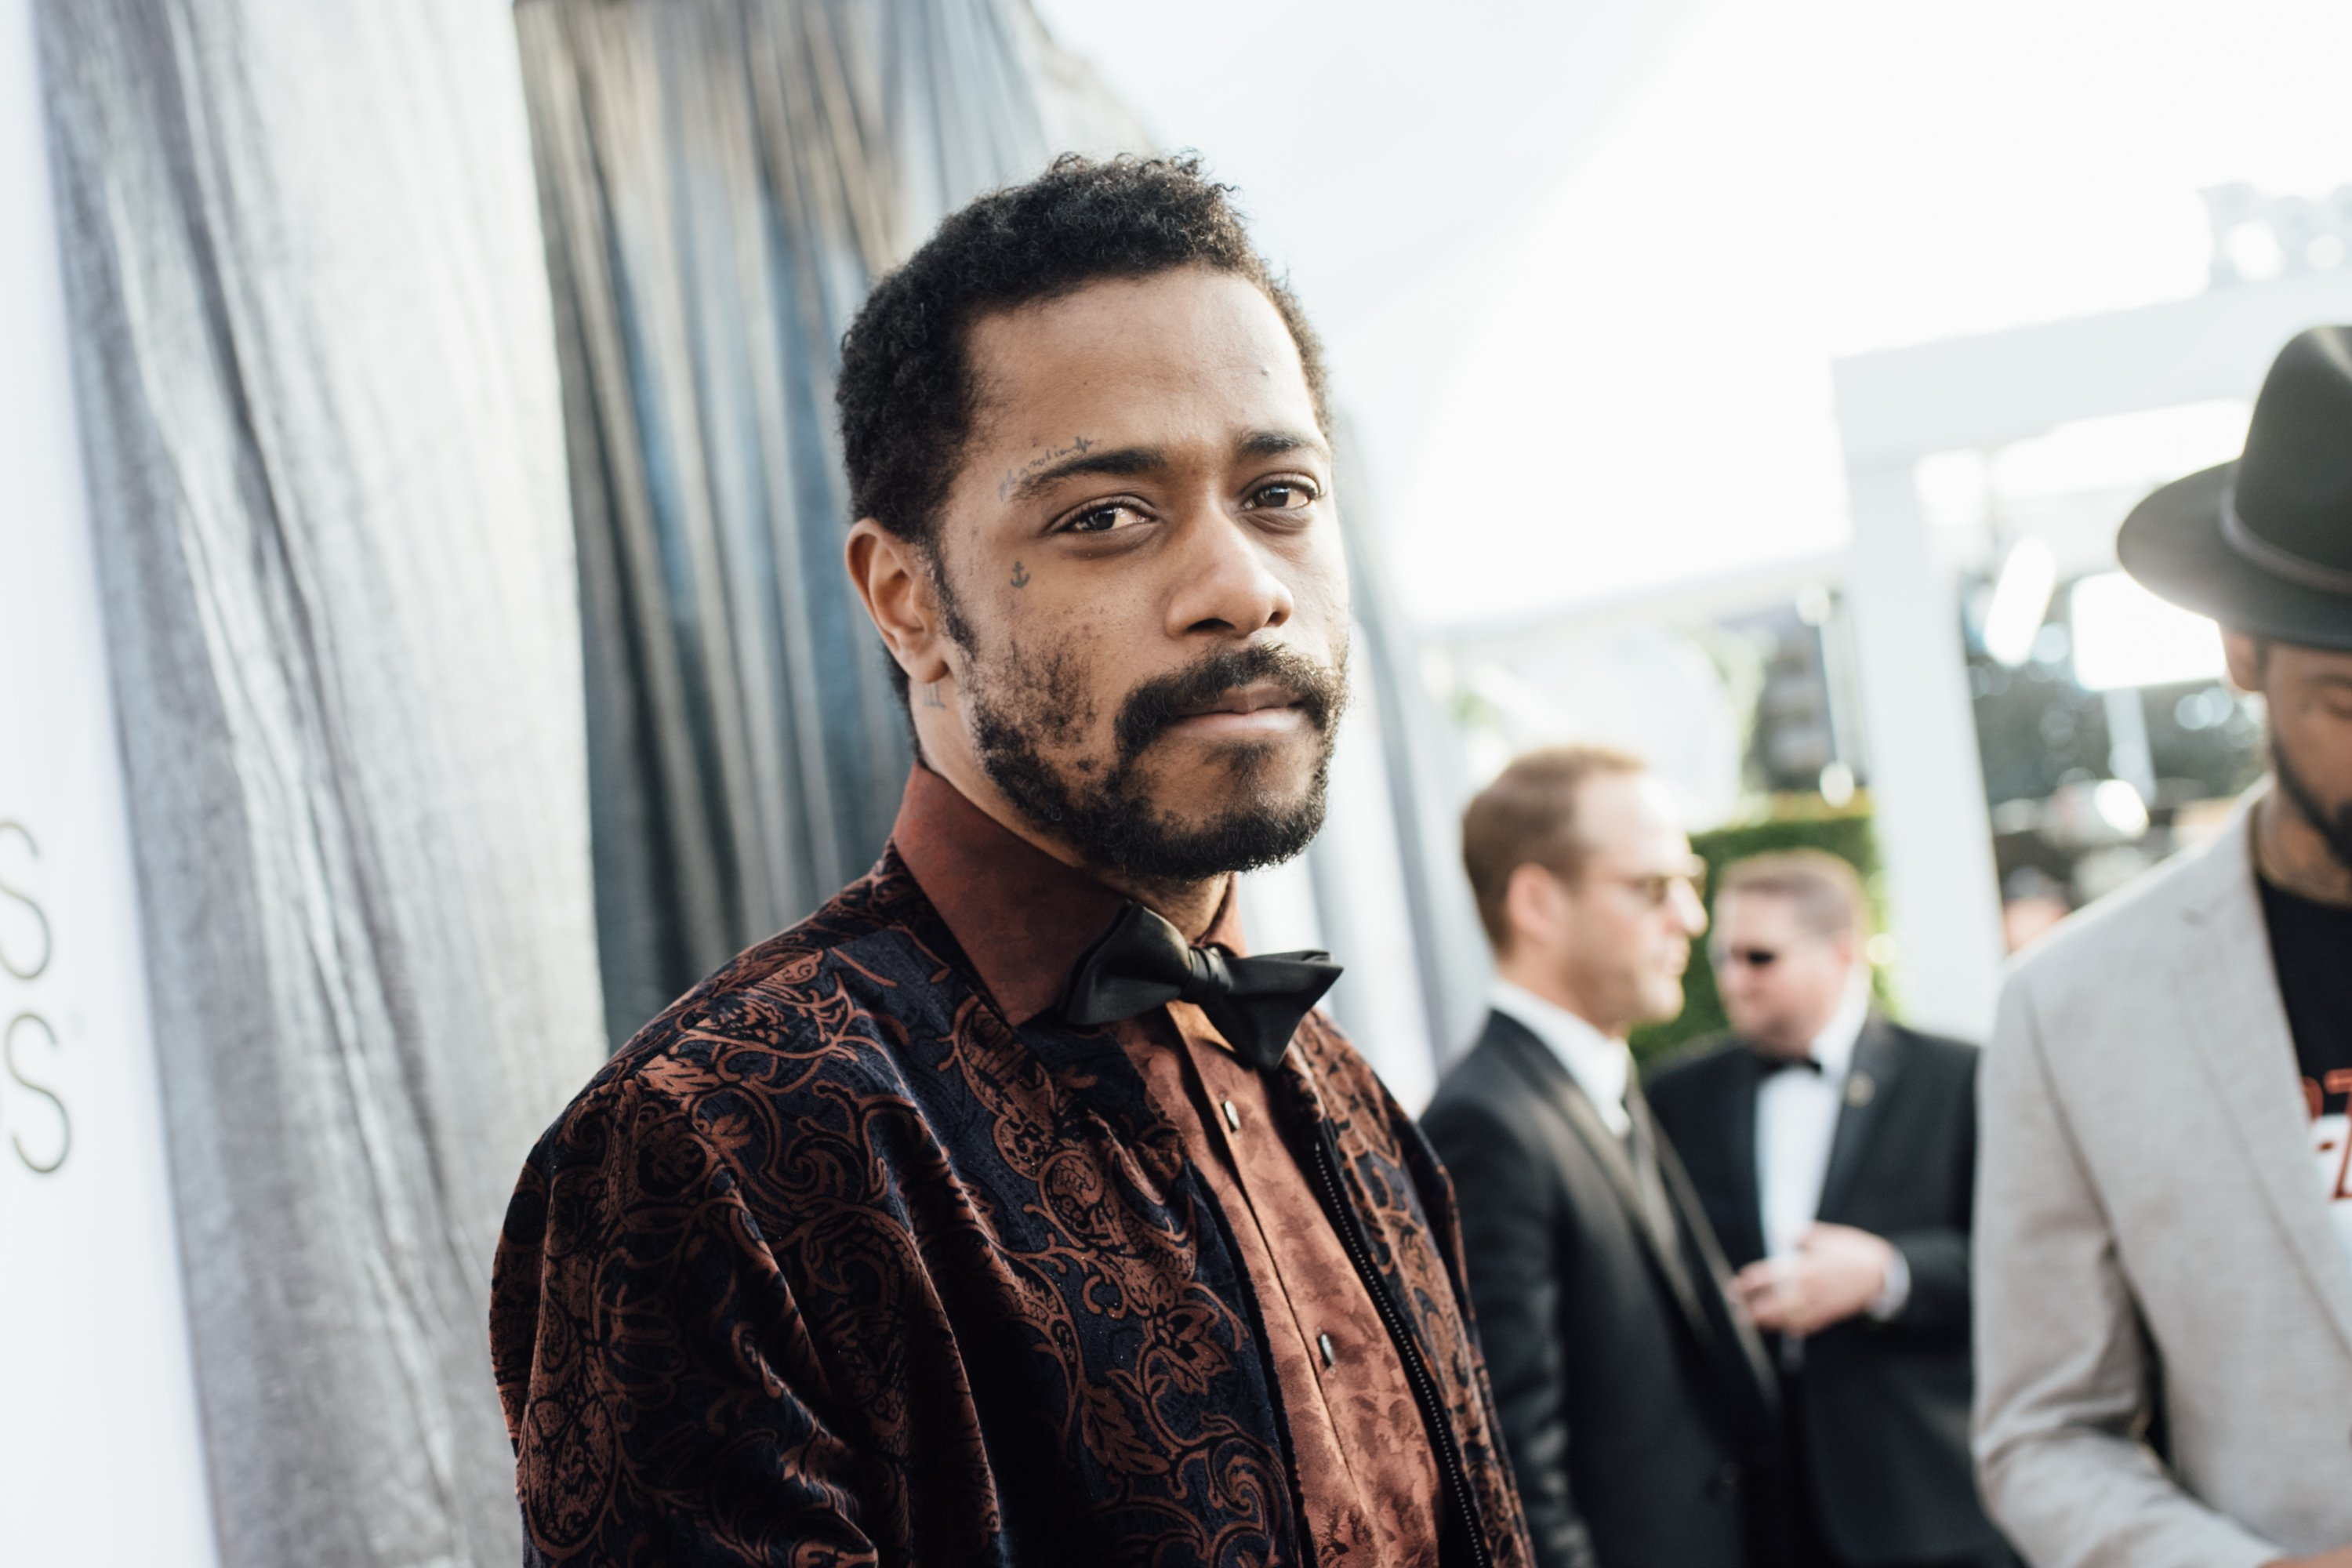 Lakeith Stanfield arrives at the 25th annual Screen Actors Guild Awards on January 27, 2019 in Los Angeles, California. | Source: Getty Images